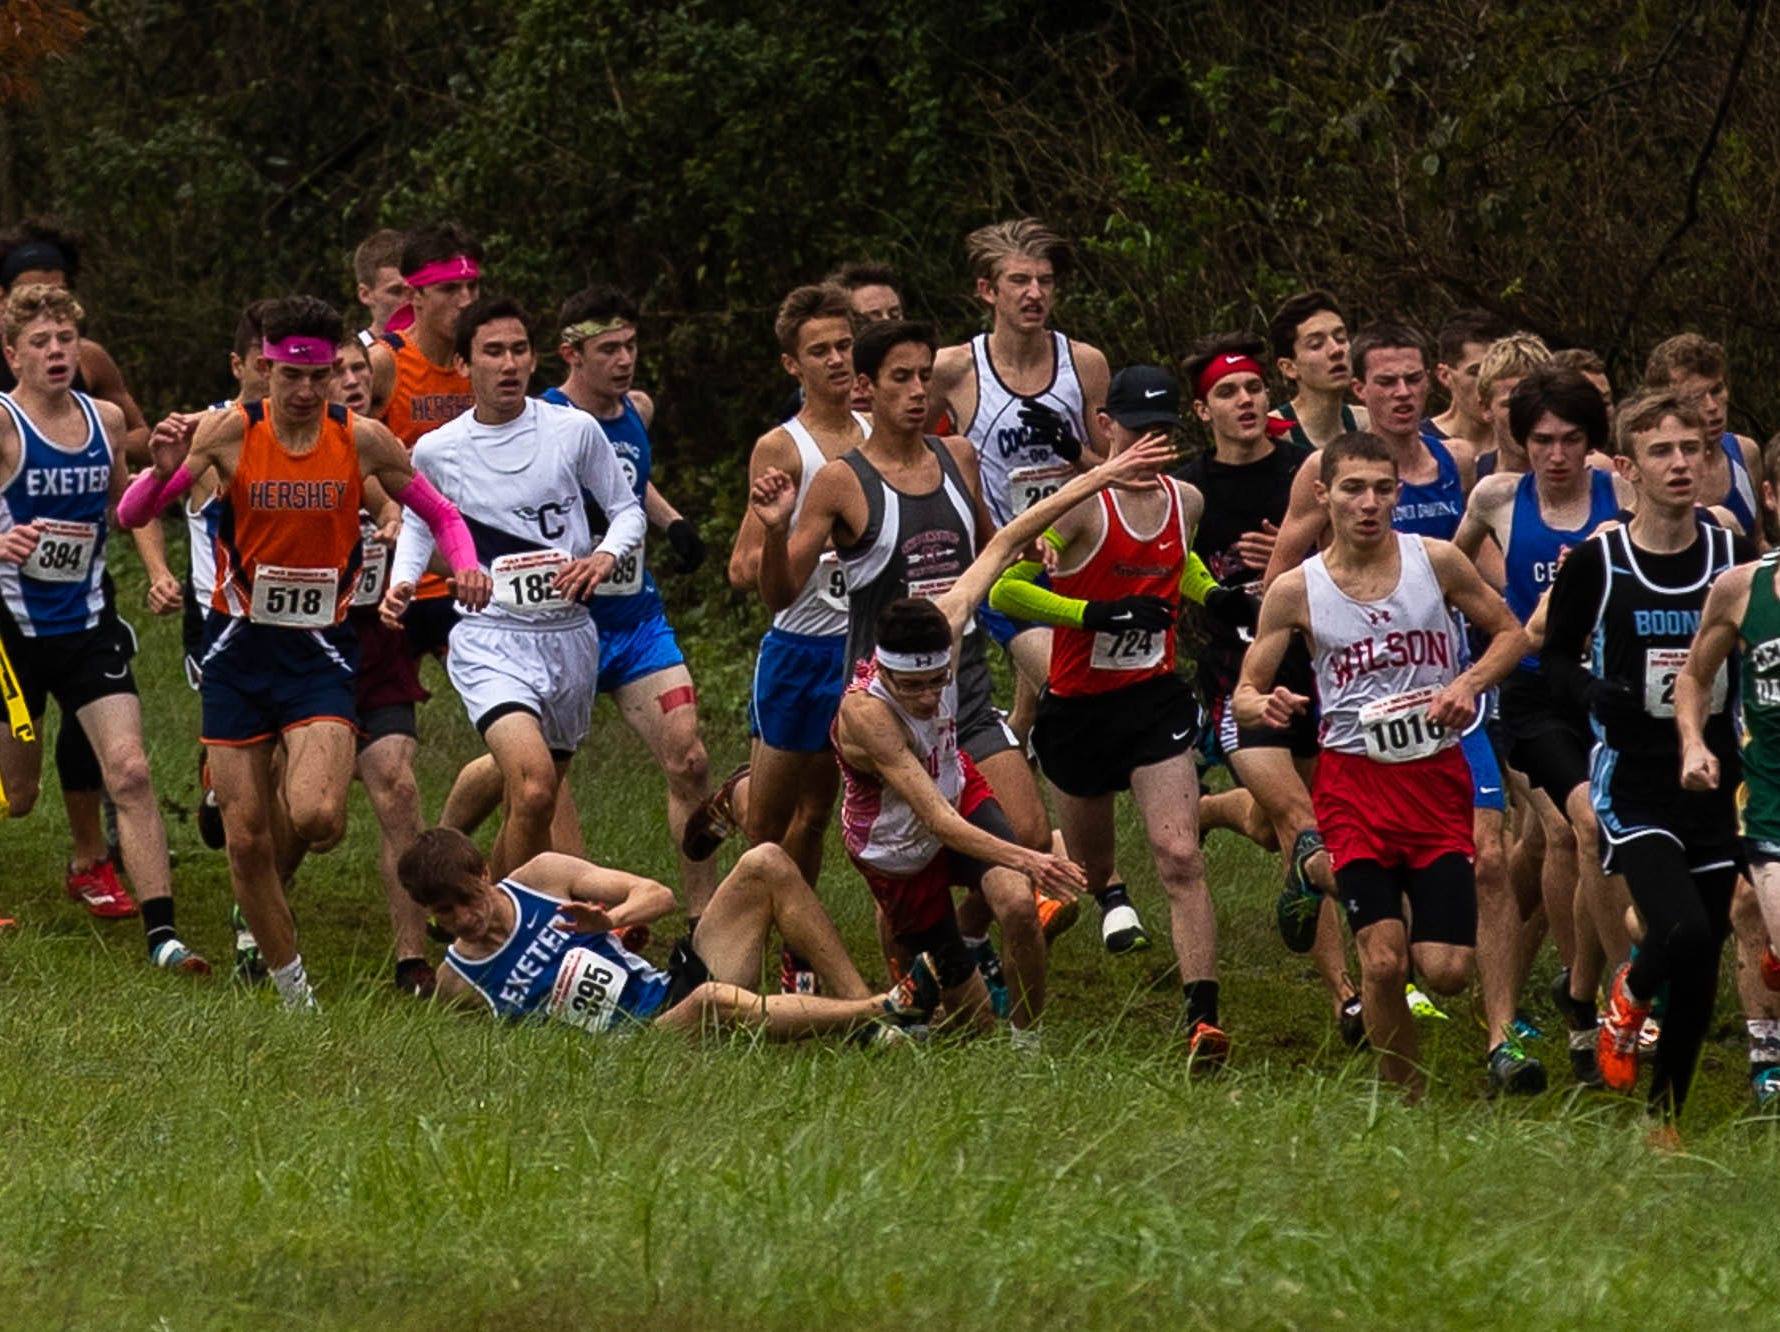 Numerous runners wipe out while rounding the first turn of the Boys AAA race during the PIAA District III Cross Country Championship, Saturday, Oct. 27, 2018, at Big Spring High School in Newville.